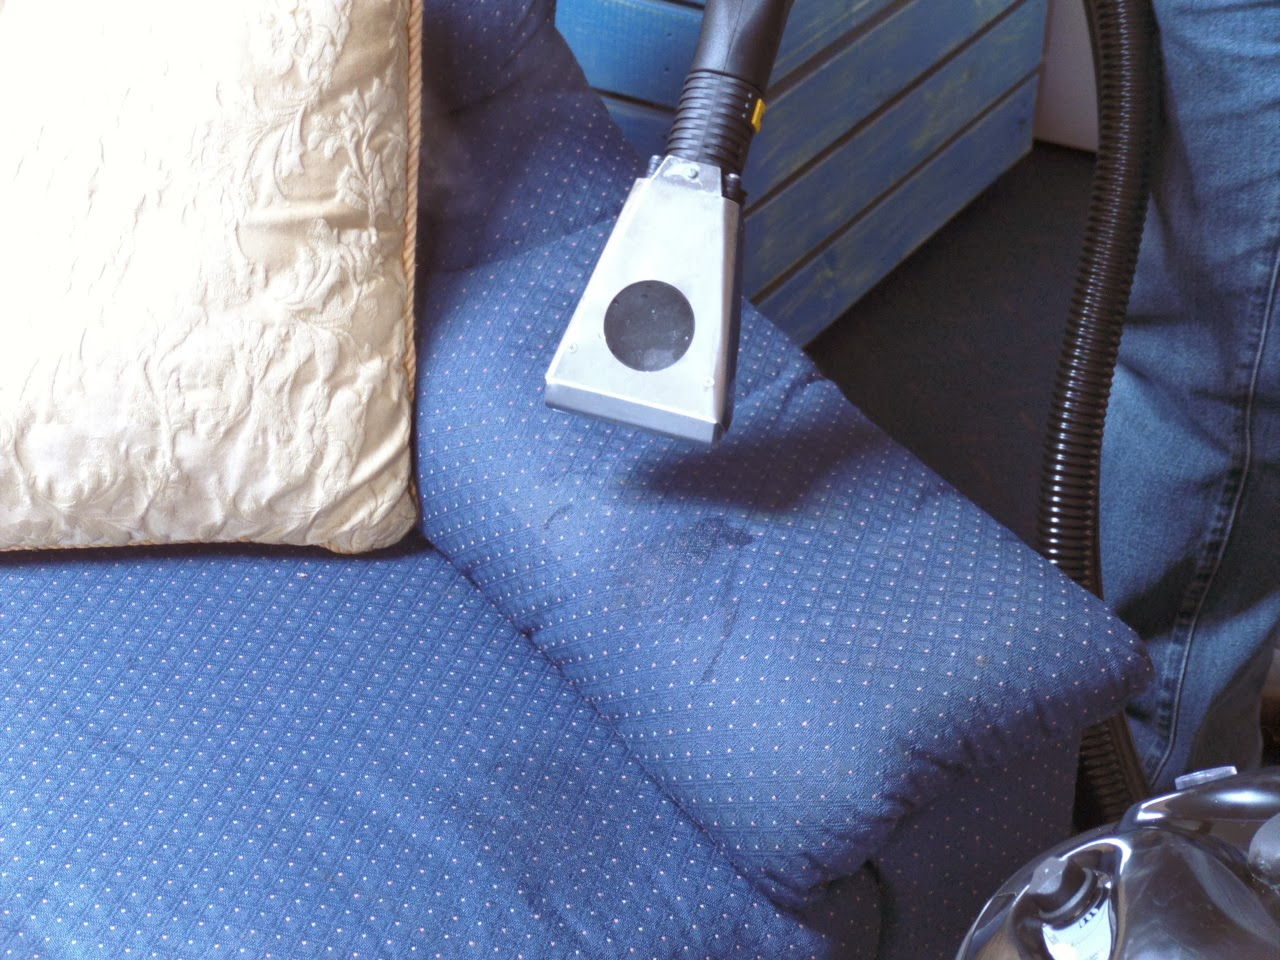 cleaning equipment for use on upholstery, within aged care homes